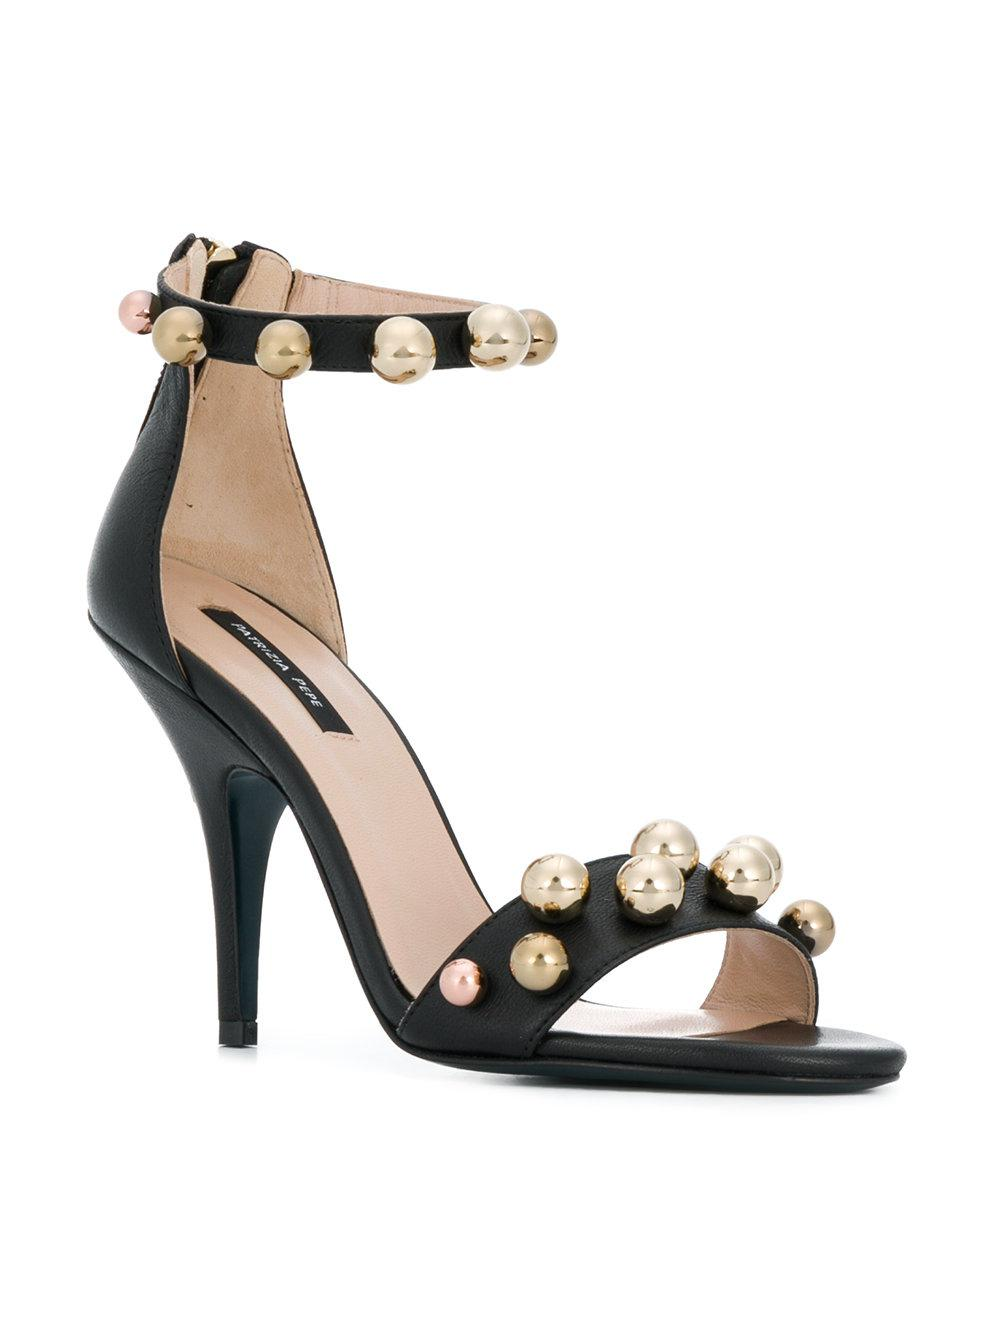 Perfect Cheap Online Free Shipping Choice beaded sandals - Black Patrizia Pepe Outlet With Paypal Order Online Buy Cheap Shop For cAvNOz9Ls